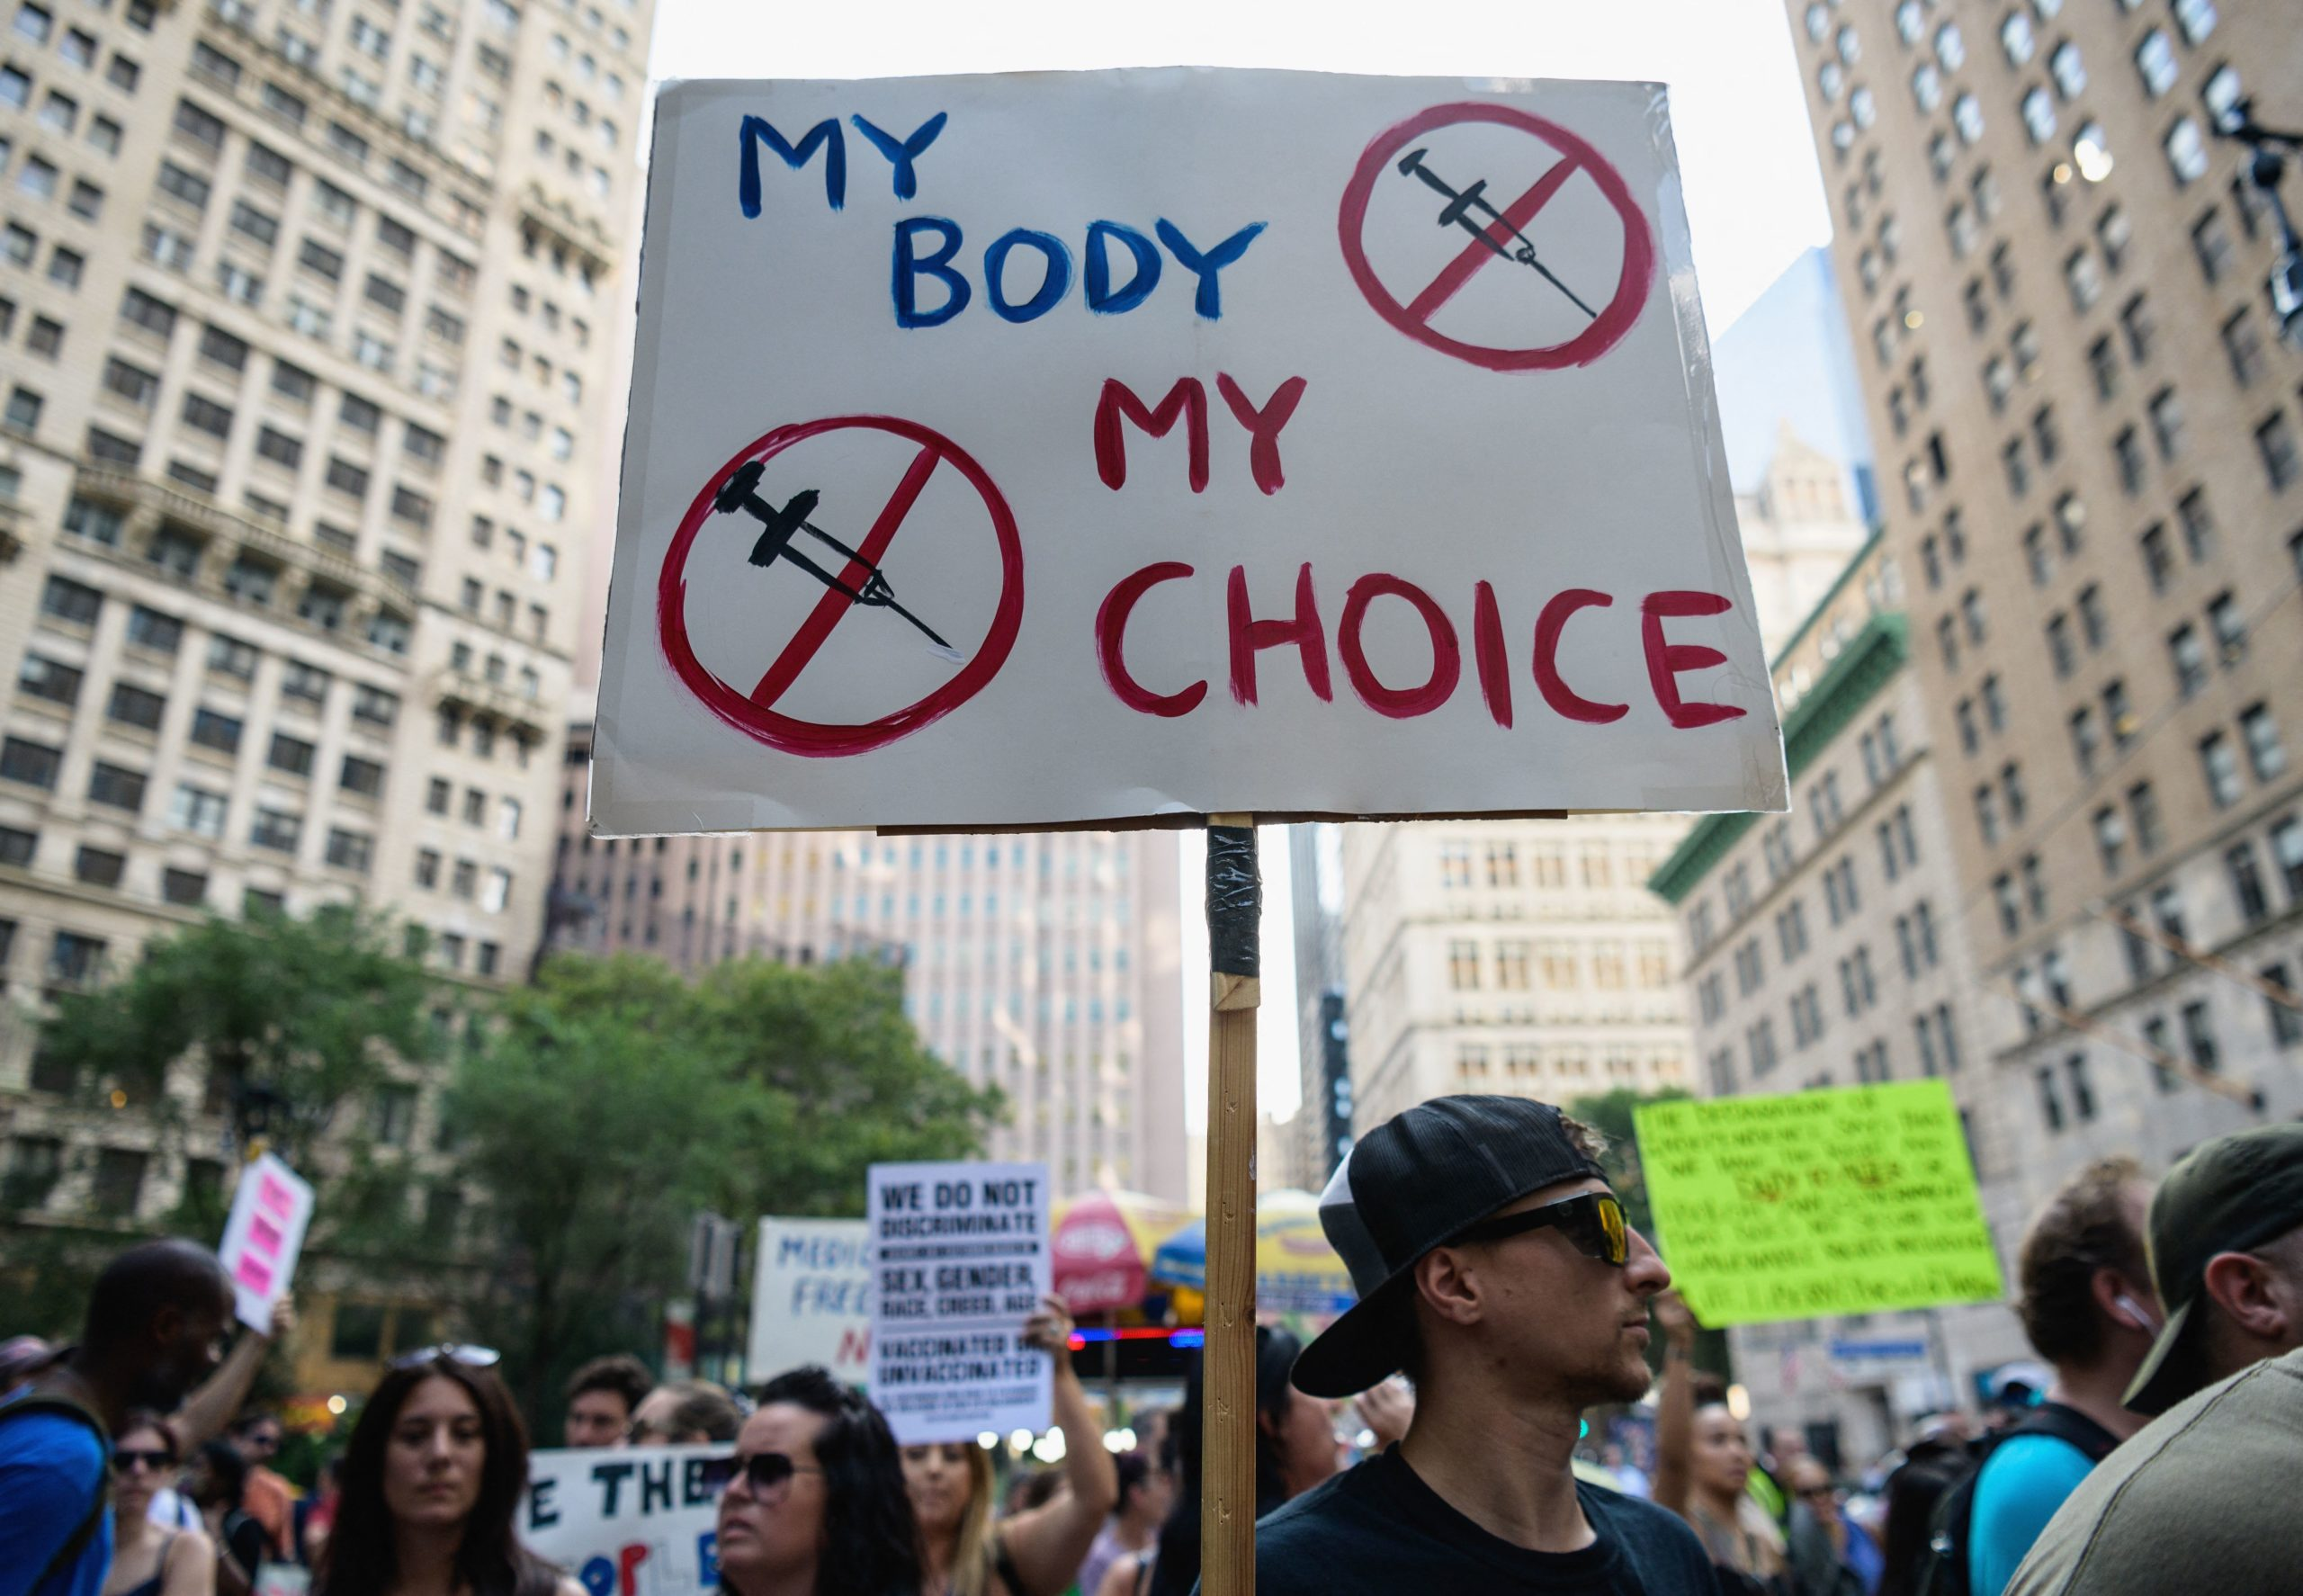 TOPSHOT - Protestors opposed to Covid-19 vaccine mandates and vaccine passports by the government rally at City Hall in New York City on August 25, 2021. (Photo by Angela WEISS / AFP) (Photo by ANGELA WEISS/AFP via Getty Images)